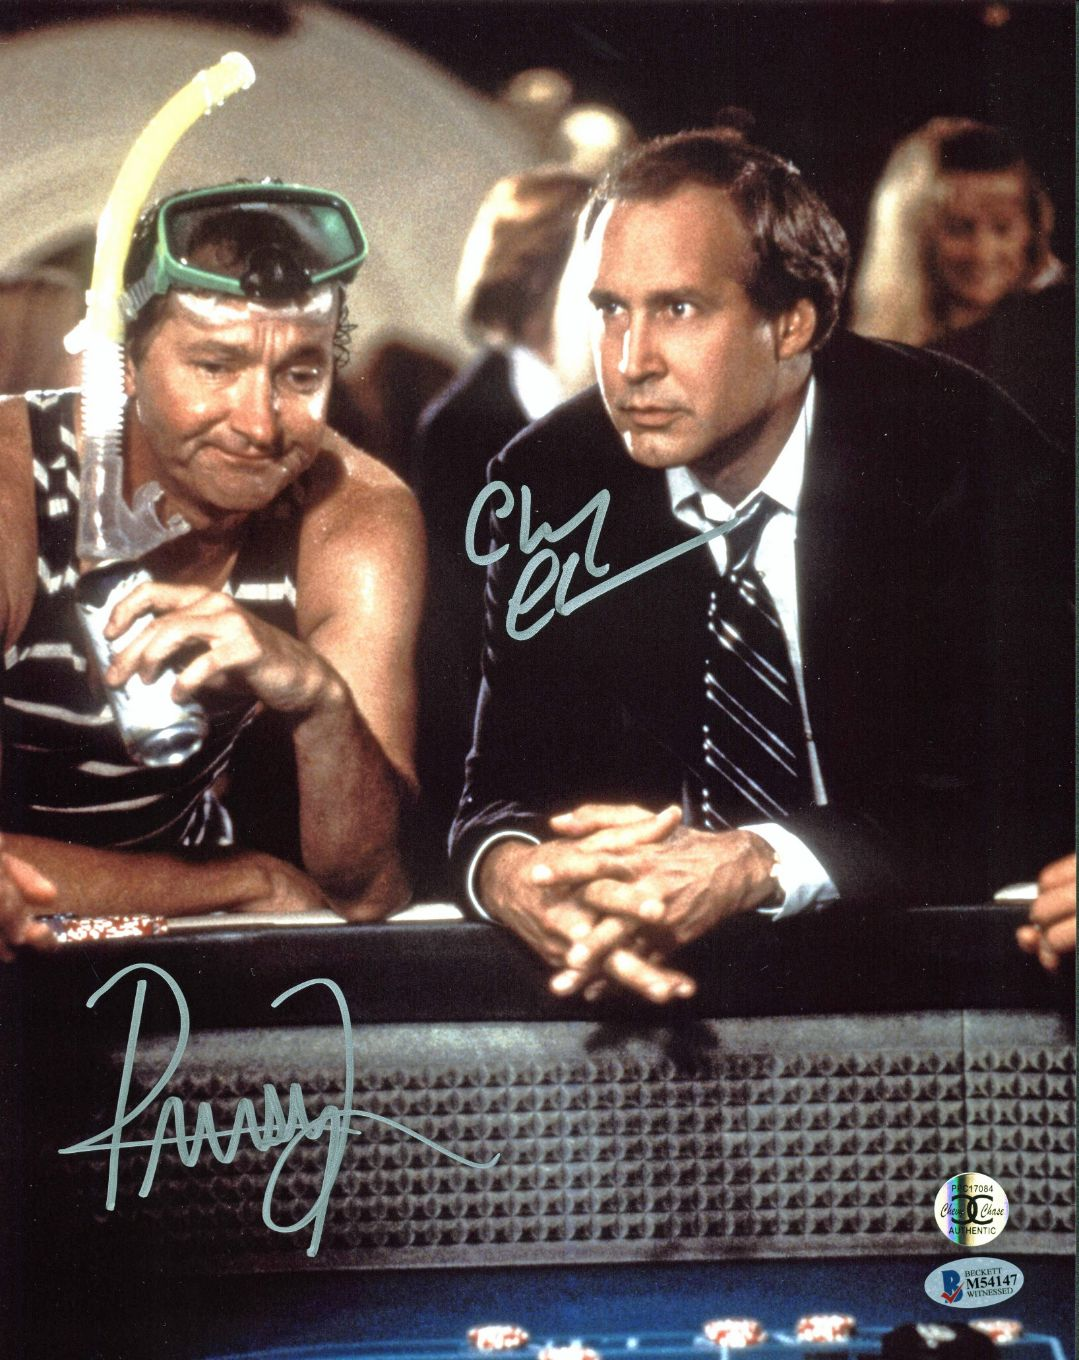 Chevy Chase And Randy Quaid In Vegas Vacation 1997: Chevy Chase & Randy Quaid Signed Vegas